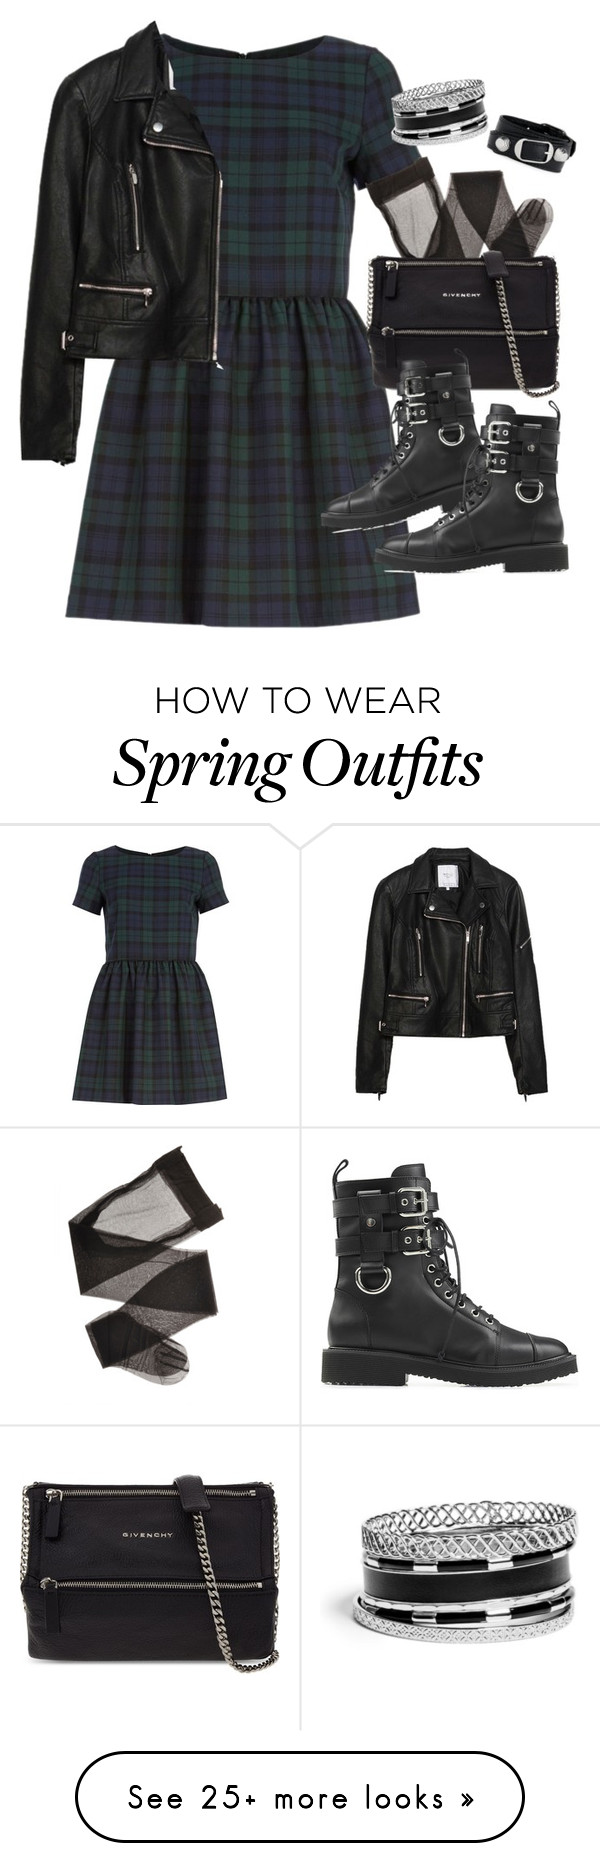 """""""Requested outfit"""" by ferned on Polyvore featuring River Island, Zara, Givenchy, Giuseppe Zanotti, GUESS and Balenciaga"""